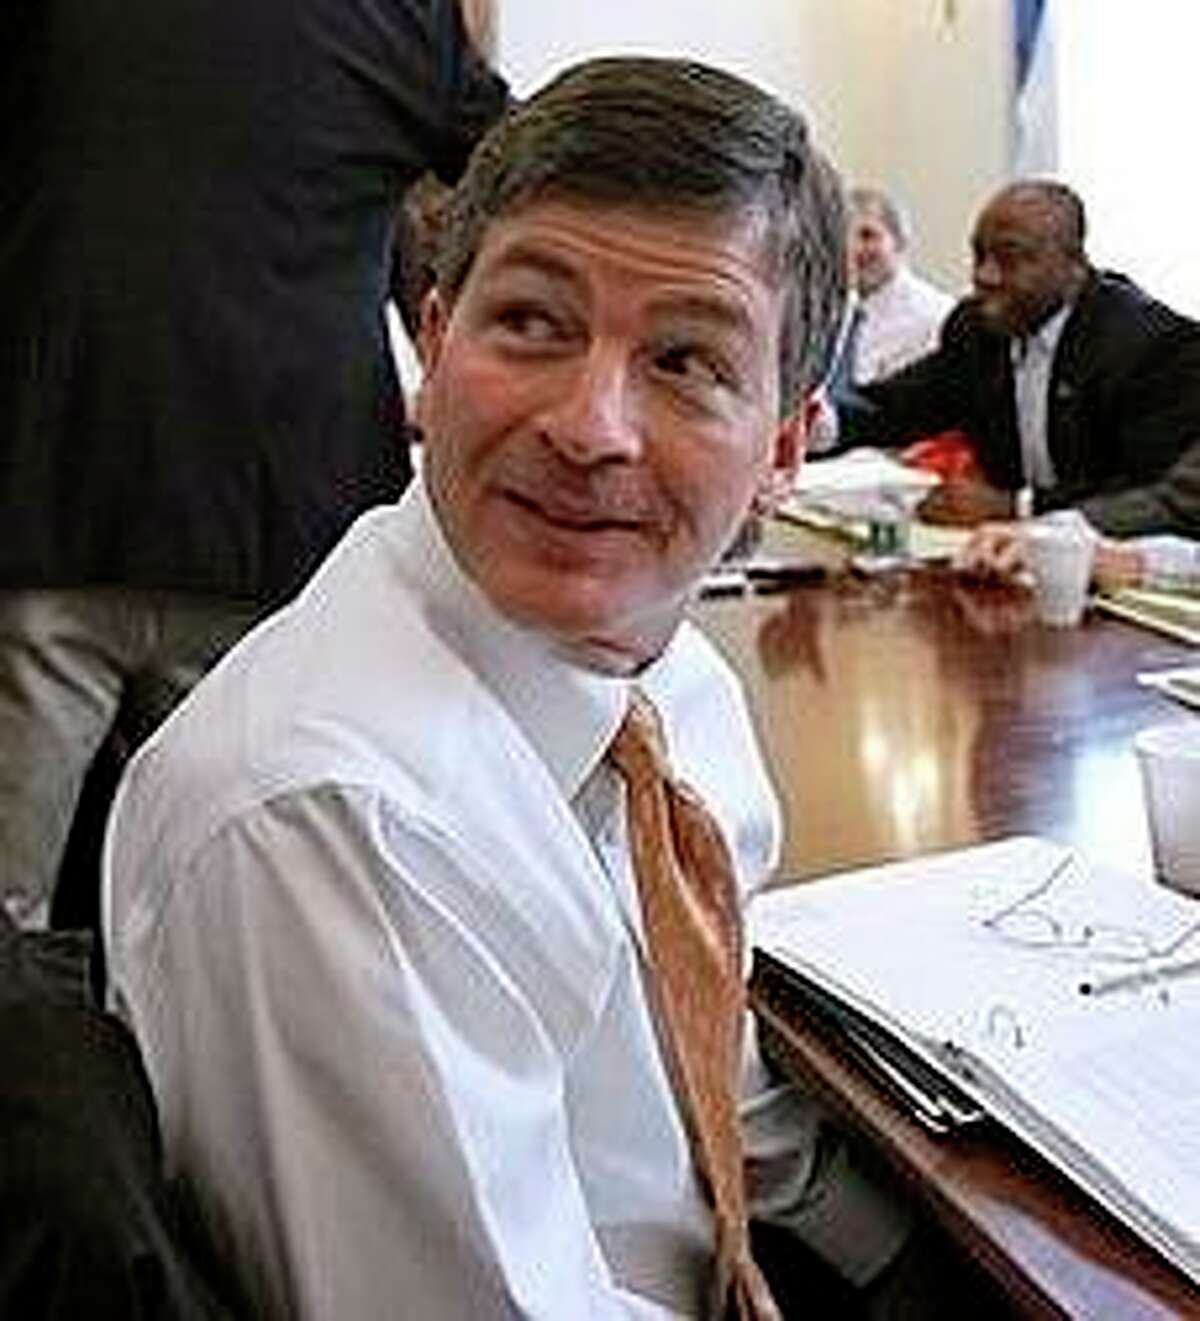 U.S. Rep. Jeb Hensarling (R-Texas) is being considered for treasury secretary, The Washington Post reported.